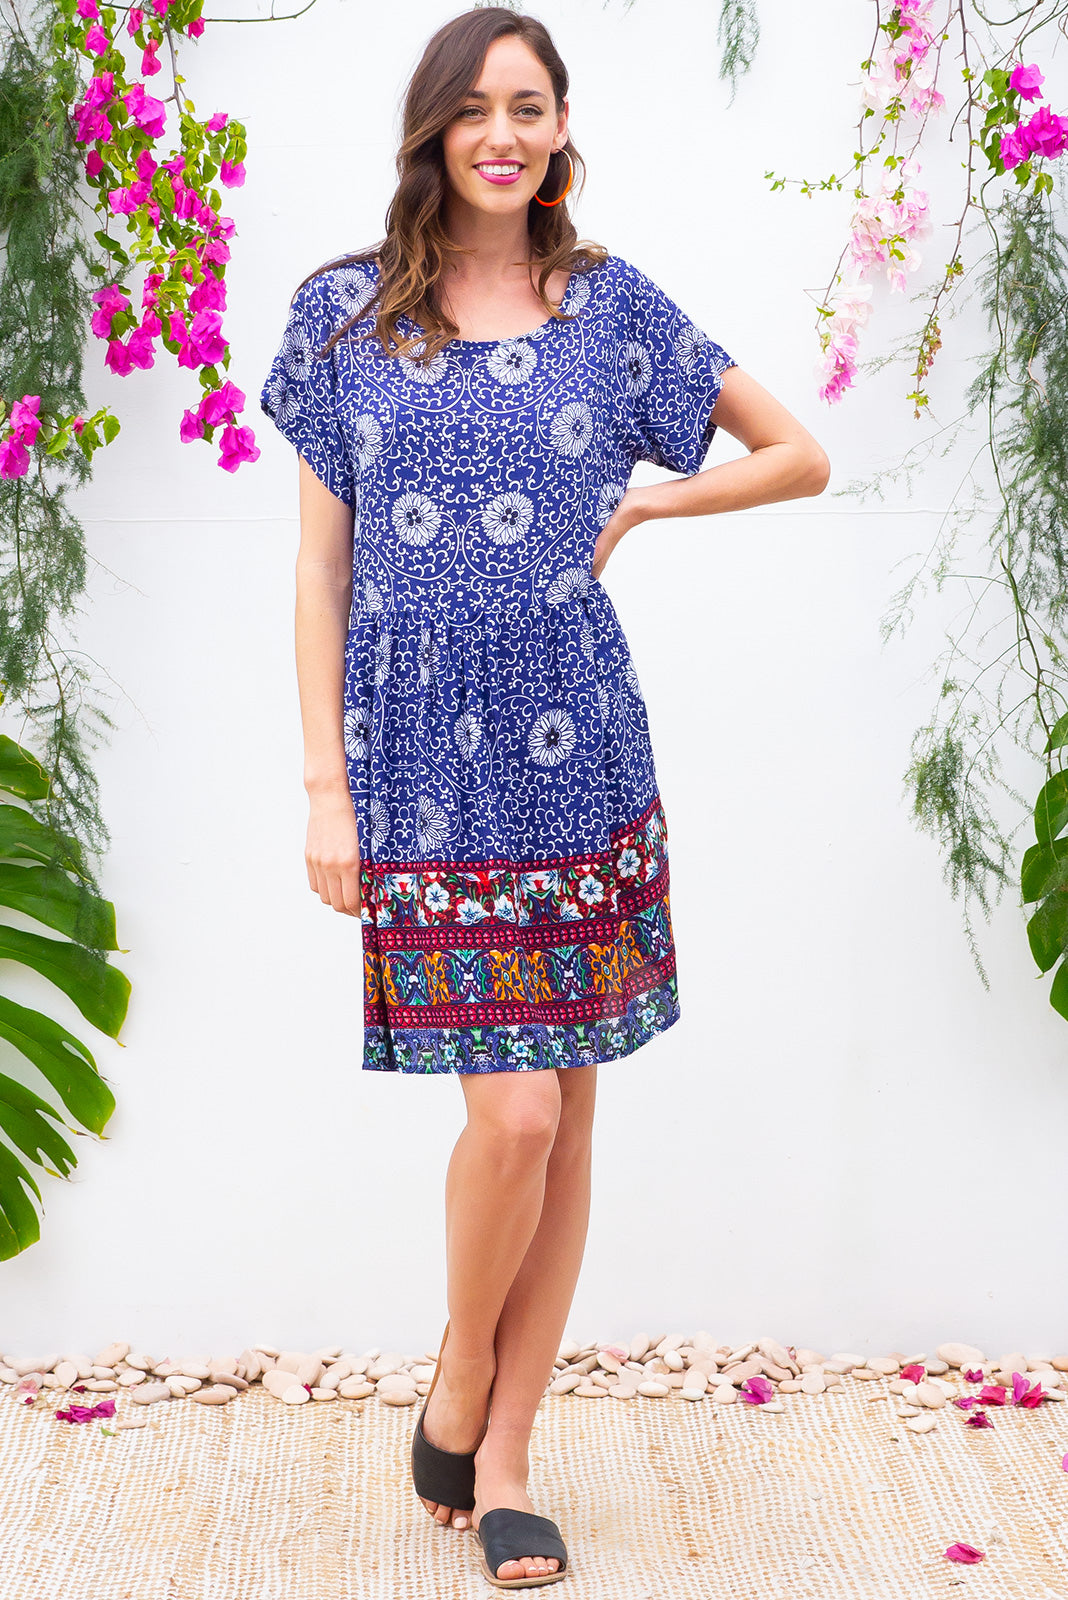 Blue Moon Morocco Dress has a easy to wear relaxed fit and features cuffed sleeves, button tabs at the waist and comes in a beautiful vibrant bright navy moroccan inspired border print on woven rayon